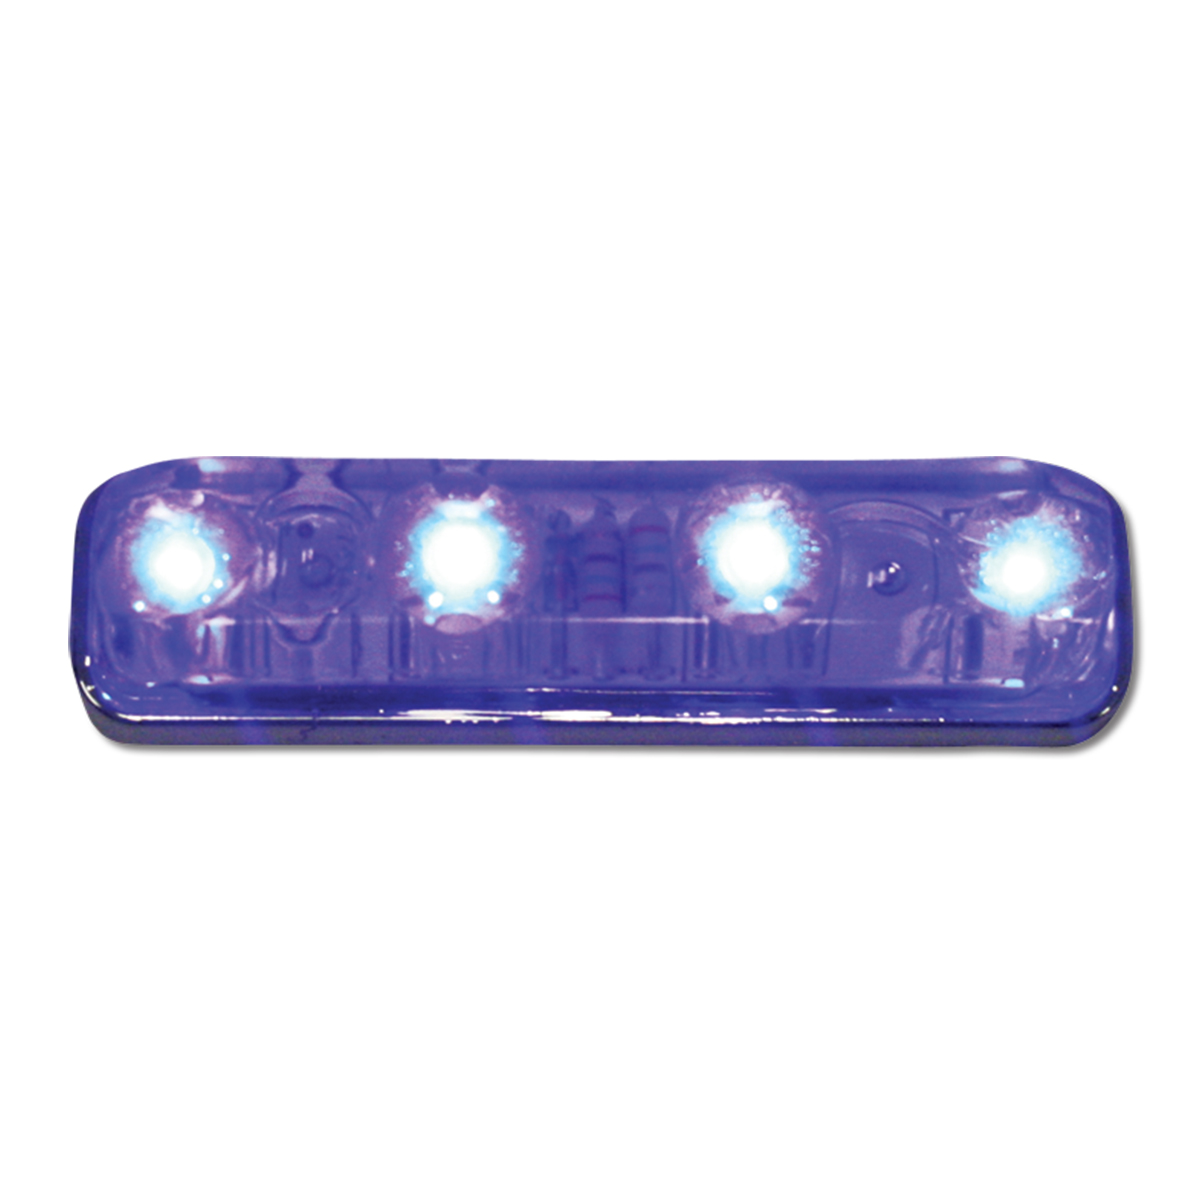 77146 Small Thin Lin Surface Mount LED Light in Blue/Clear